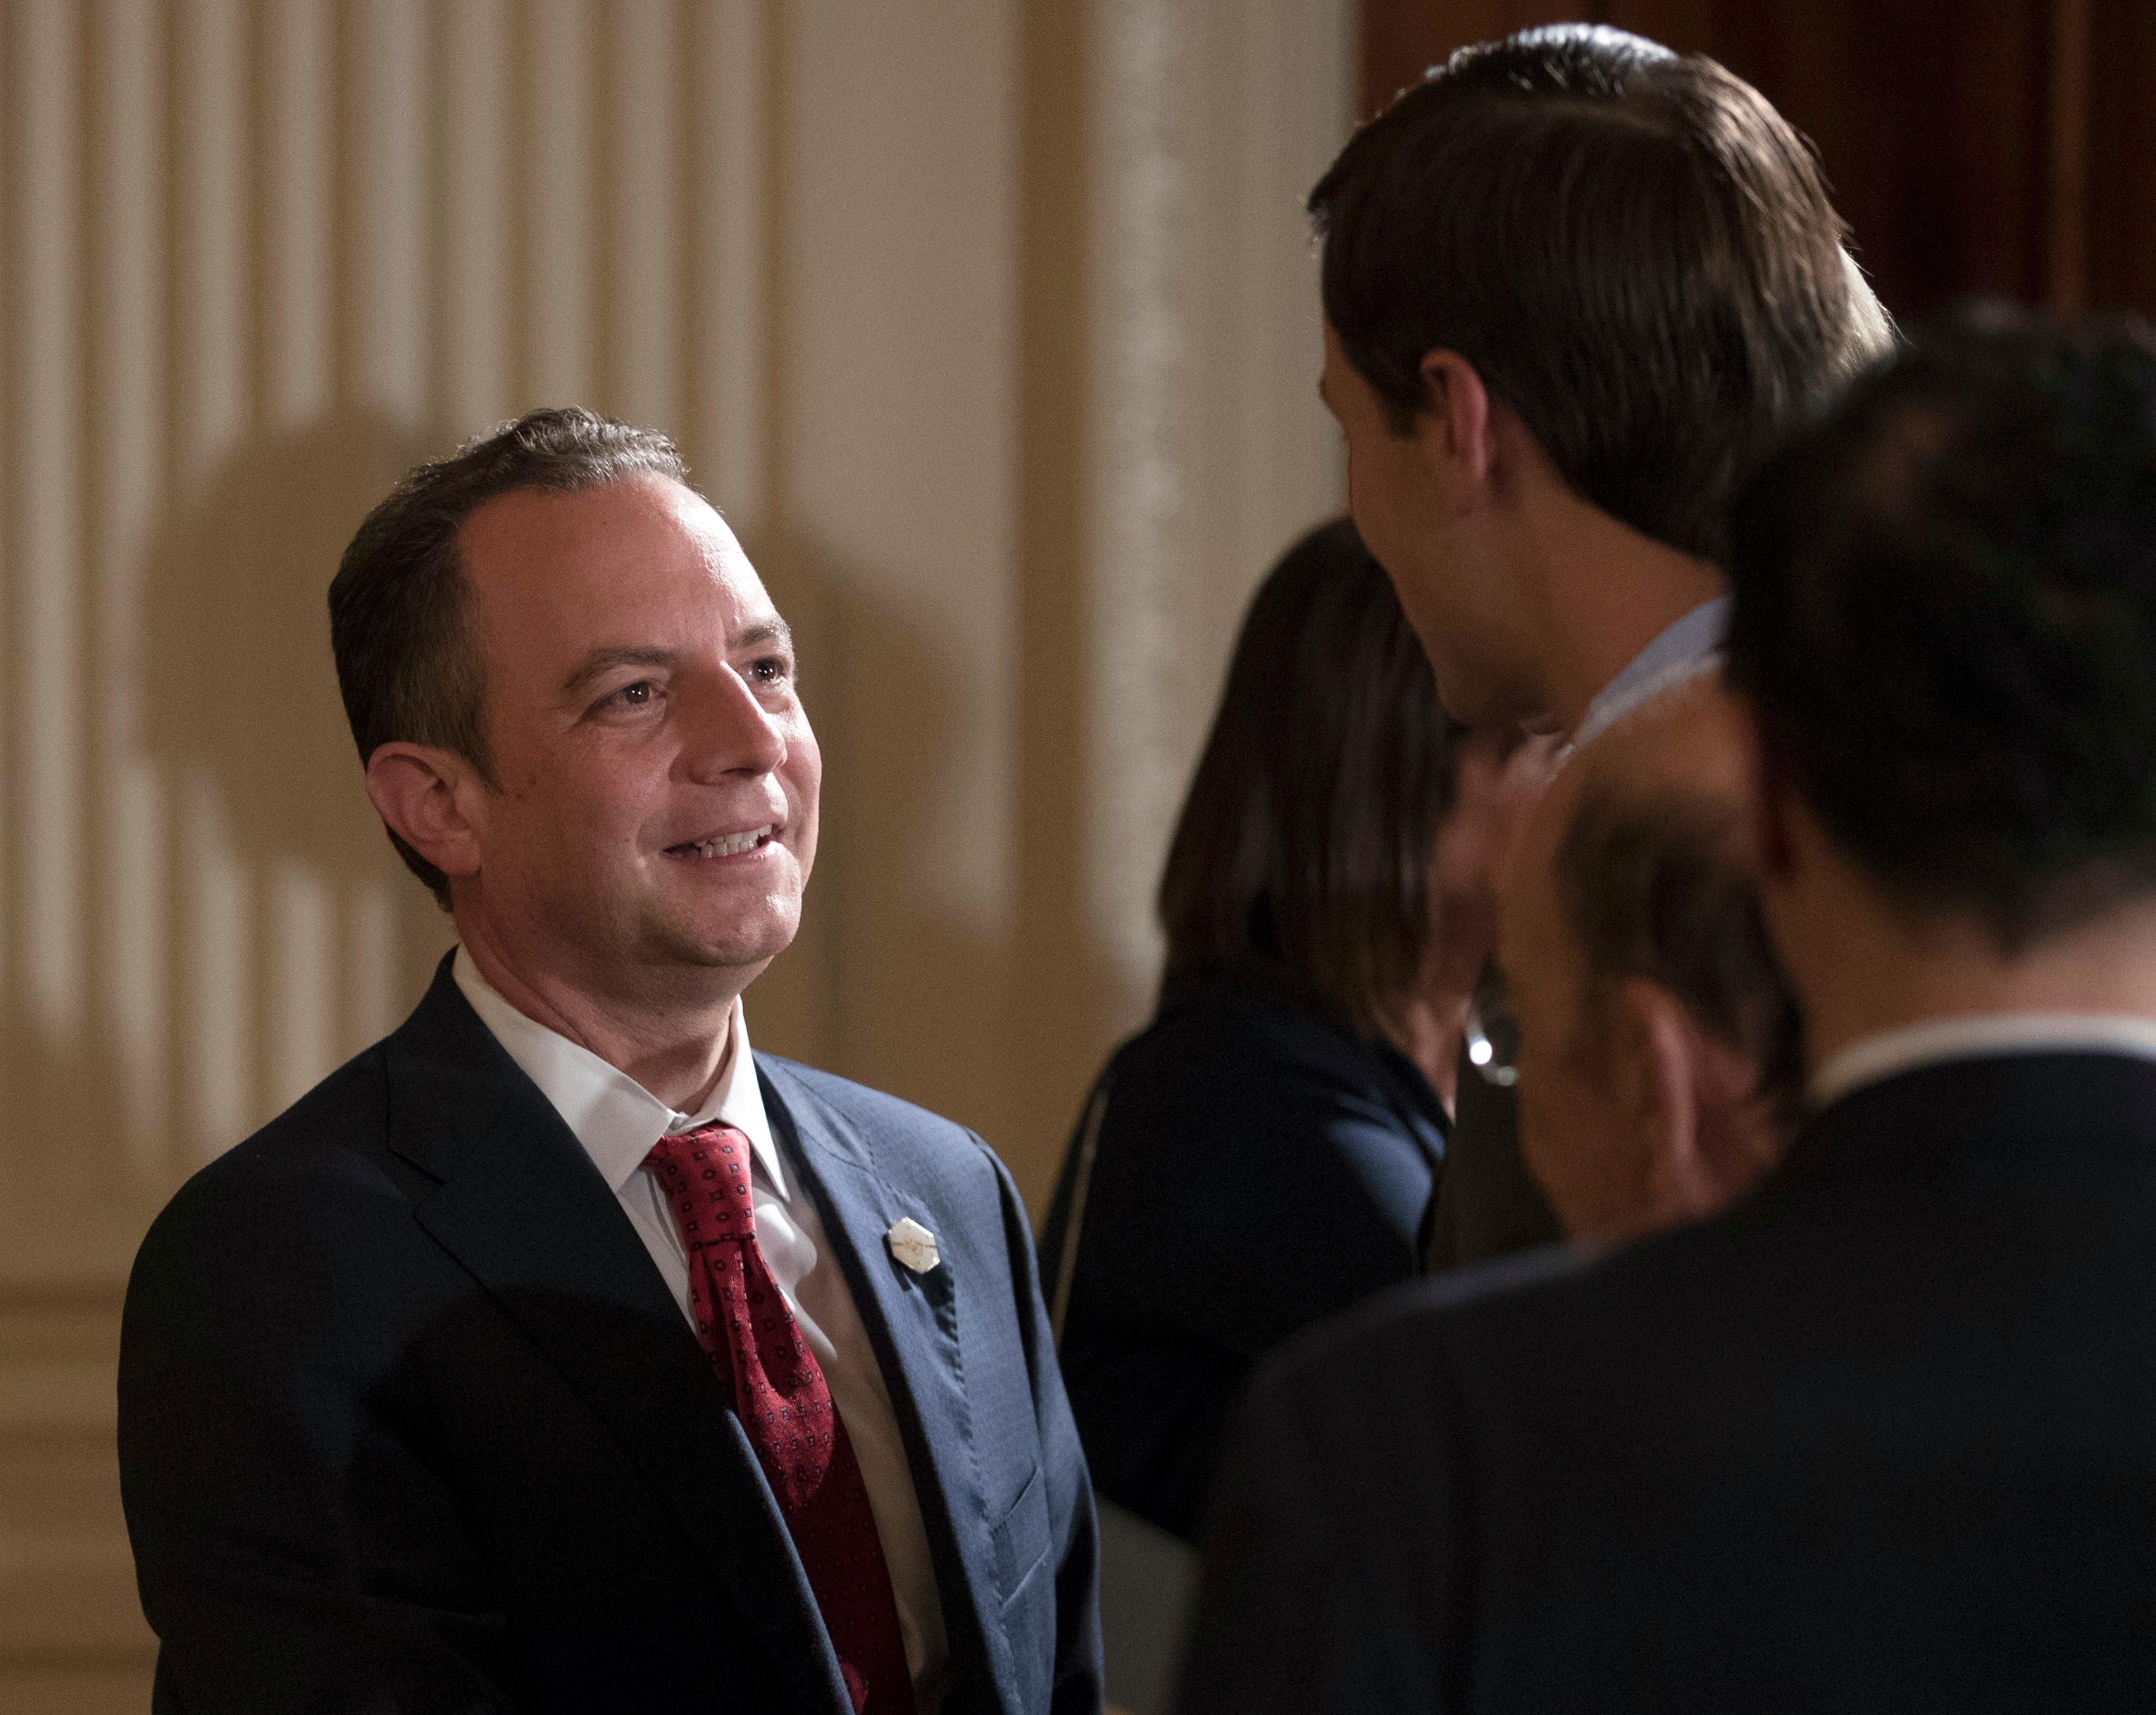 White House Chief of Staff Reince Priebus, talks with senior adviser to President Donald Trump, Jared Kushner, in the East Room of the White House in Washington, Wednesday, July 26, 2017. (AP Photo/Carolyn Kaster)